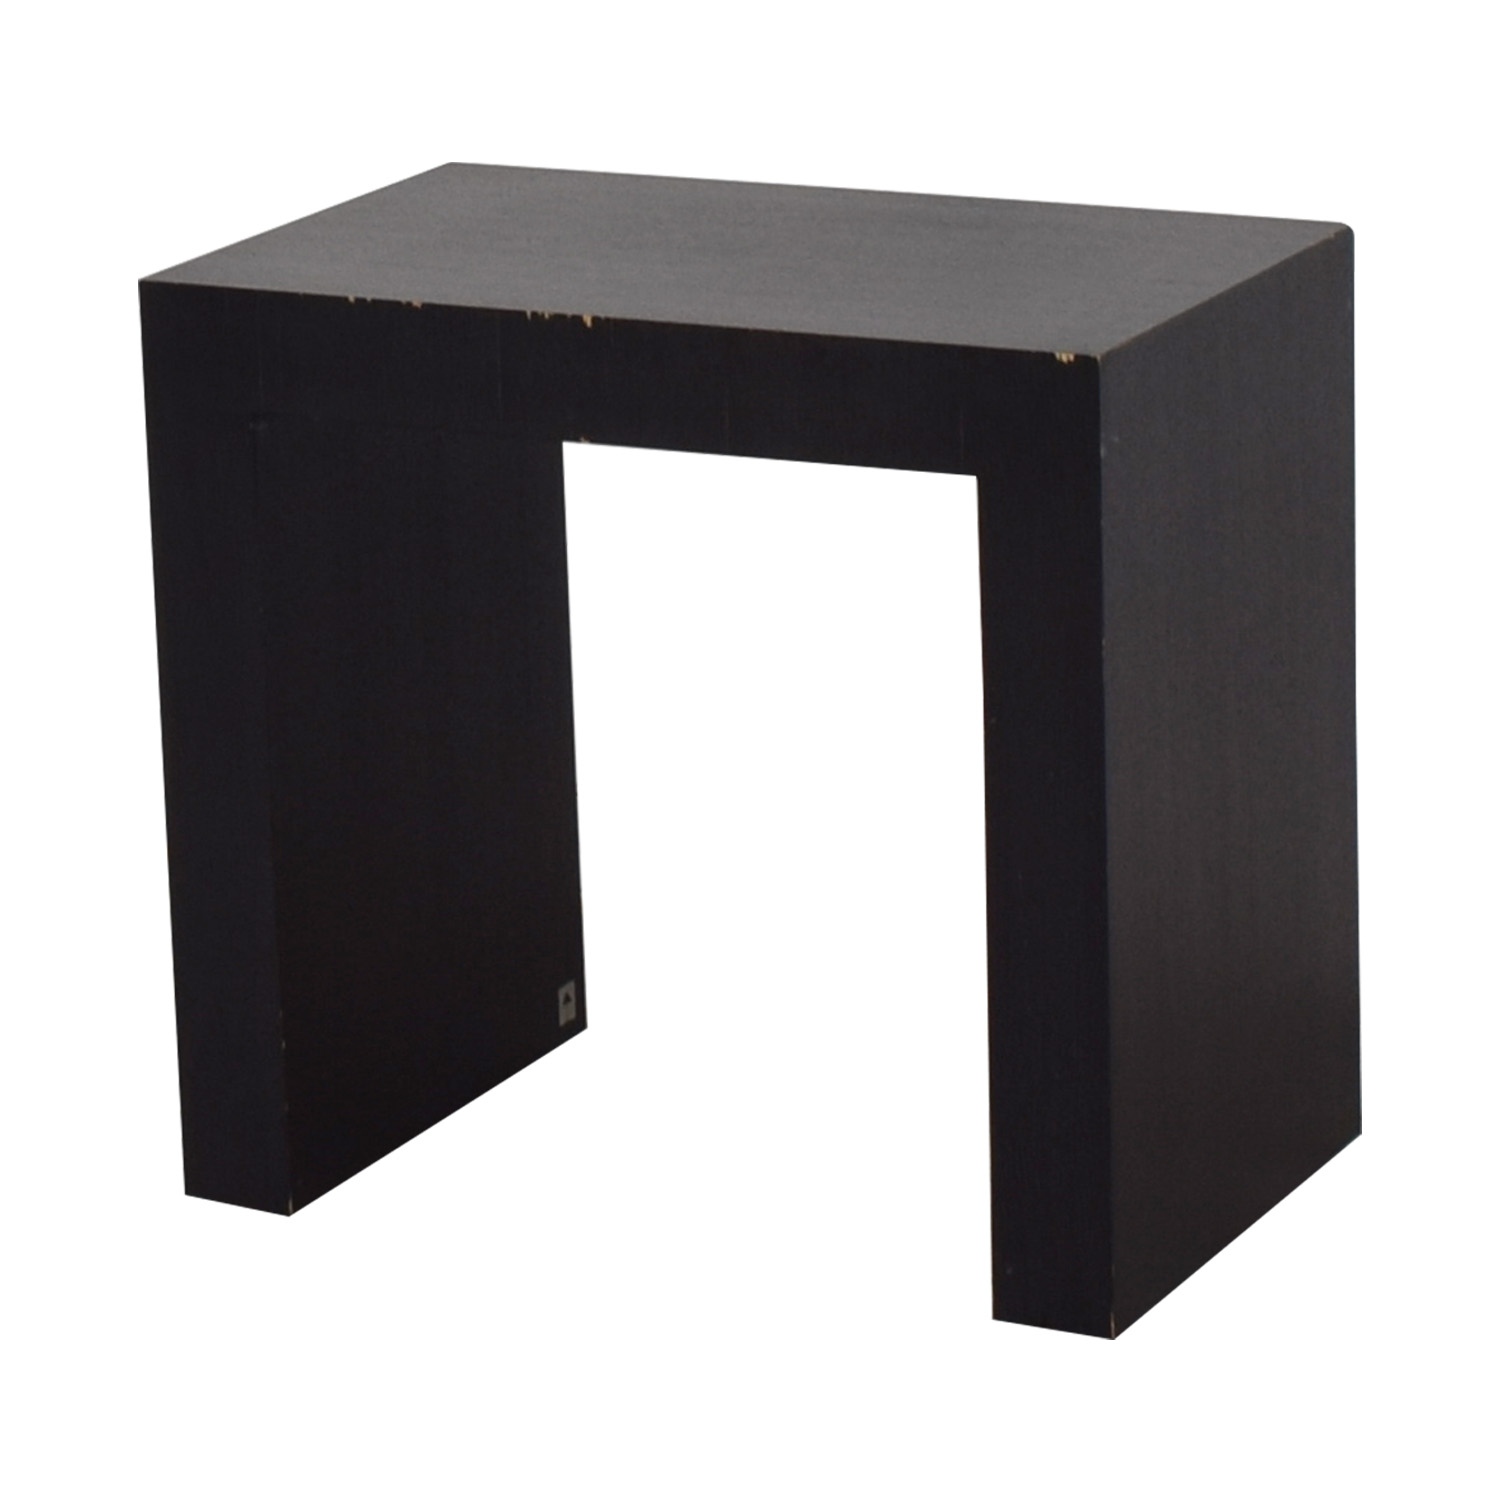 Armani Casa Seine Console Table / Tables